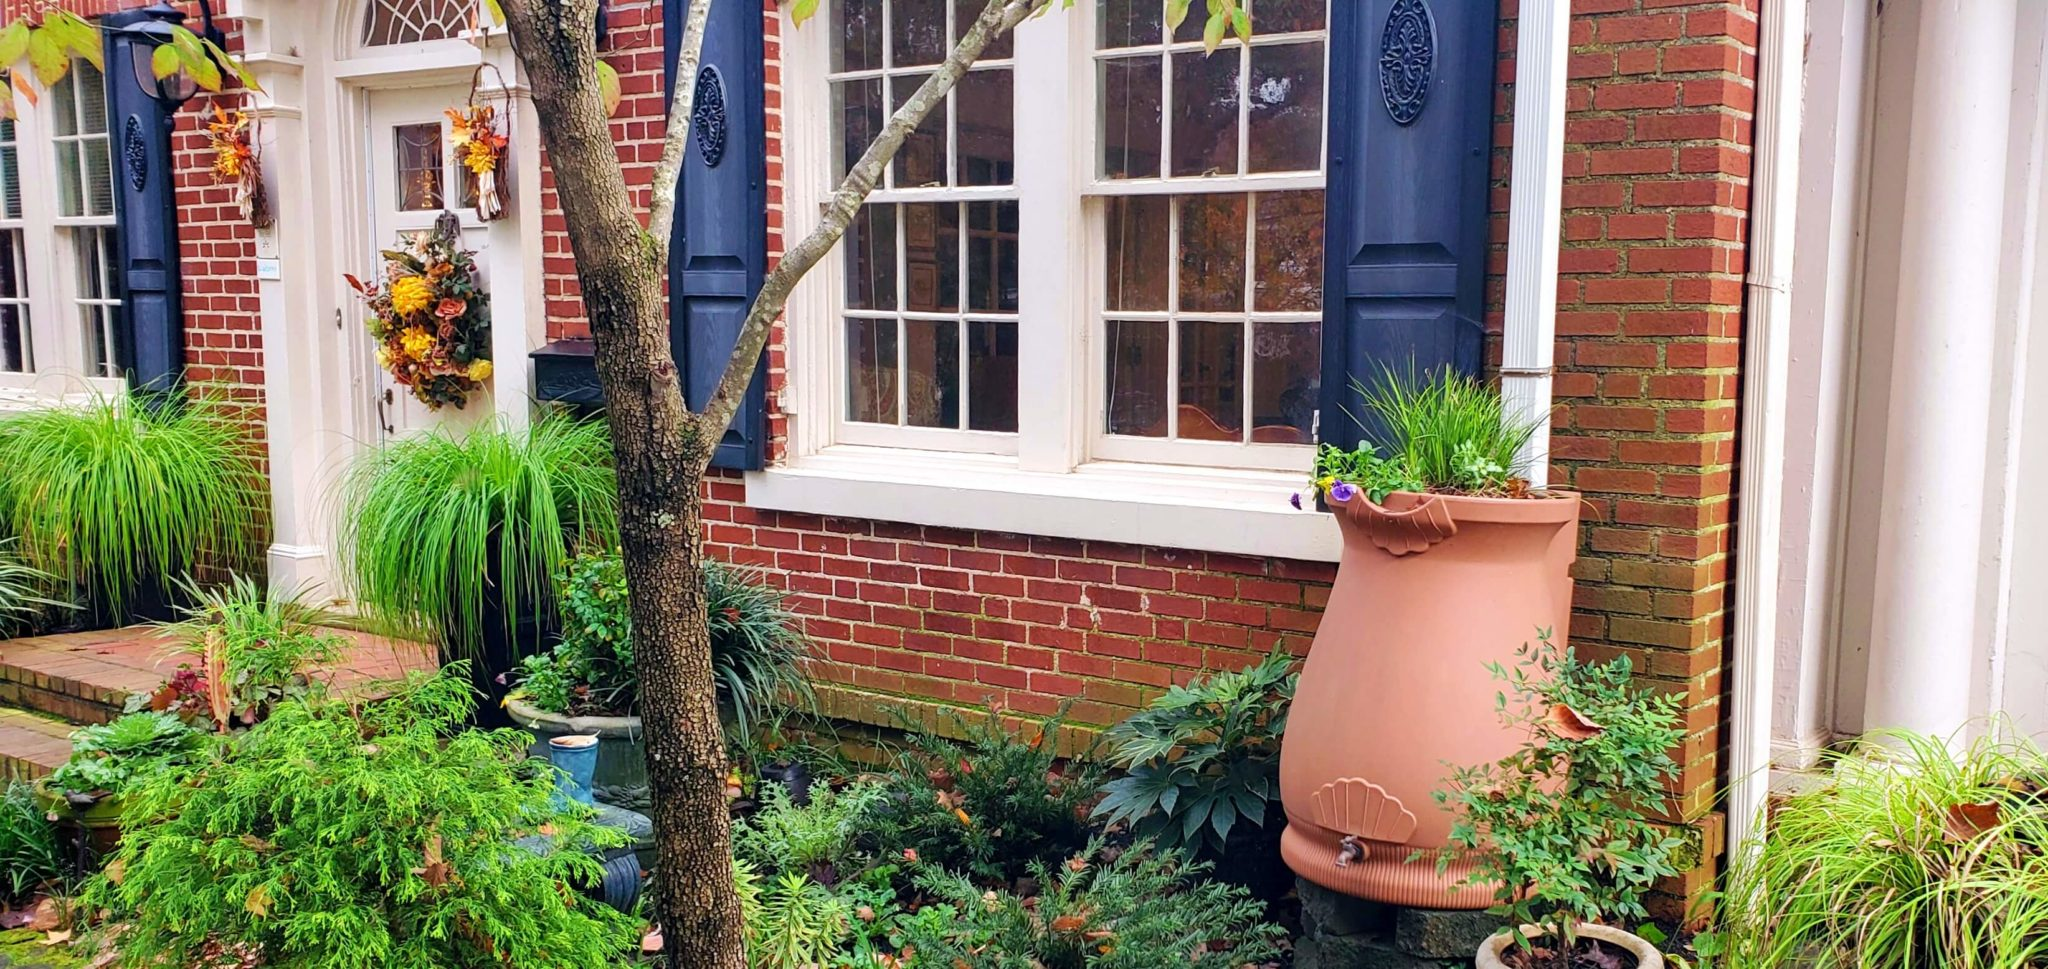 Rain water collection bucket in front of red brick house in garden.